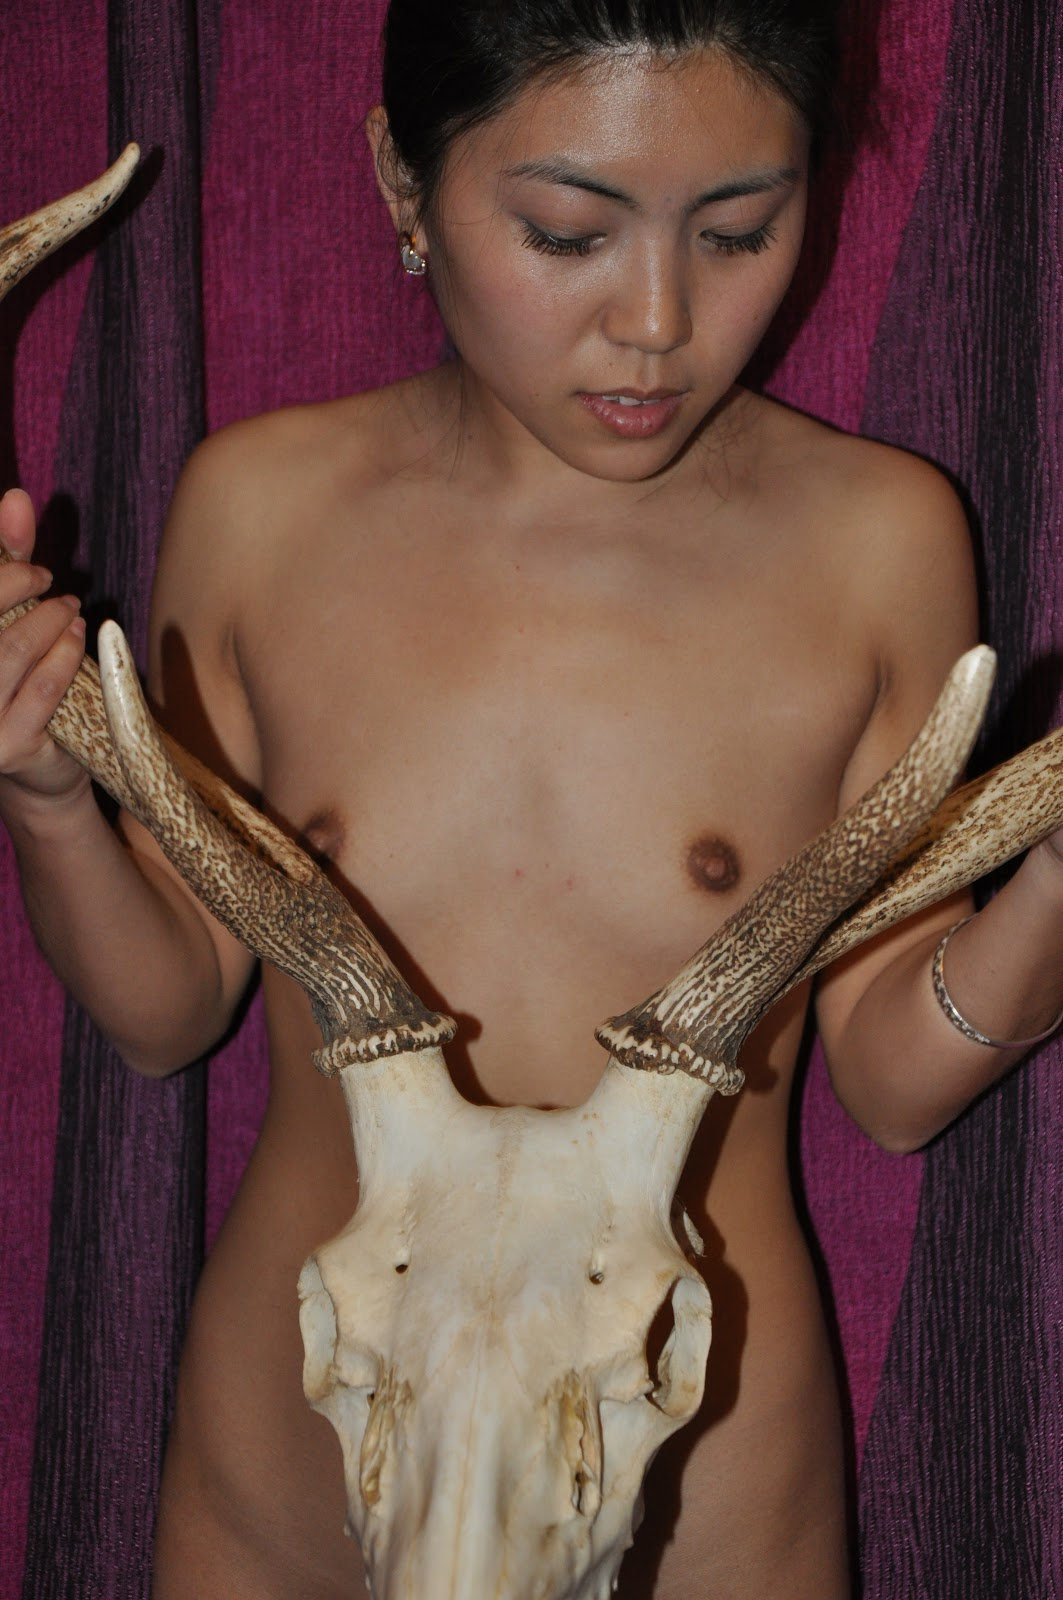 Chinese Nude_Art_Photos_-_195_-_SiSi.rar chinese 07040